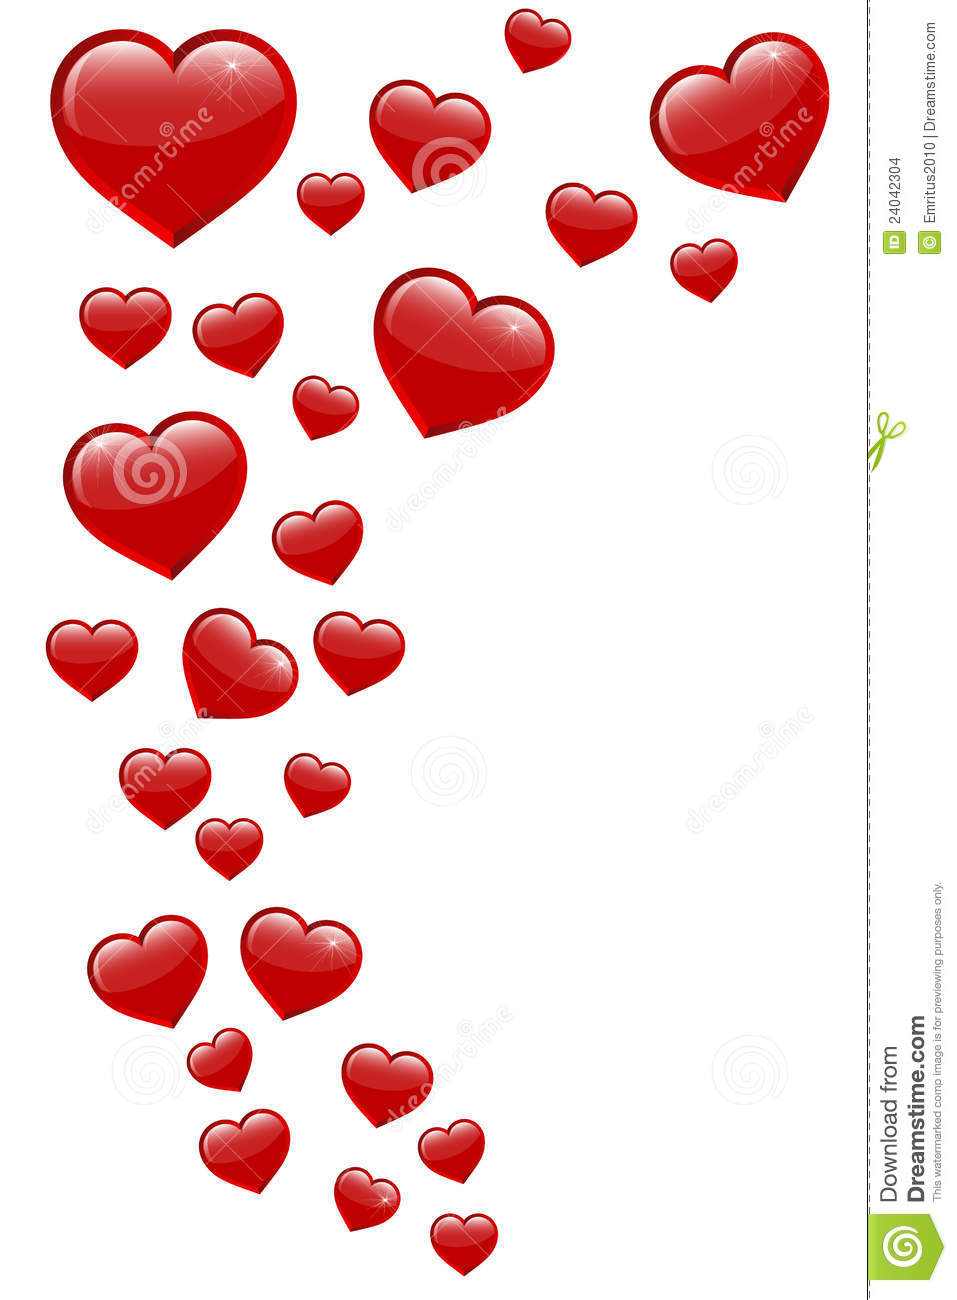 Flying Hearts Stock Images - Image: 24042304